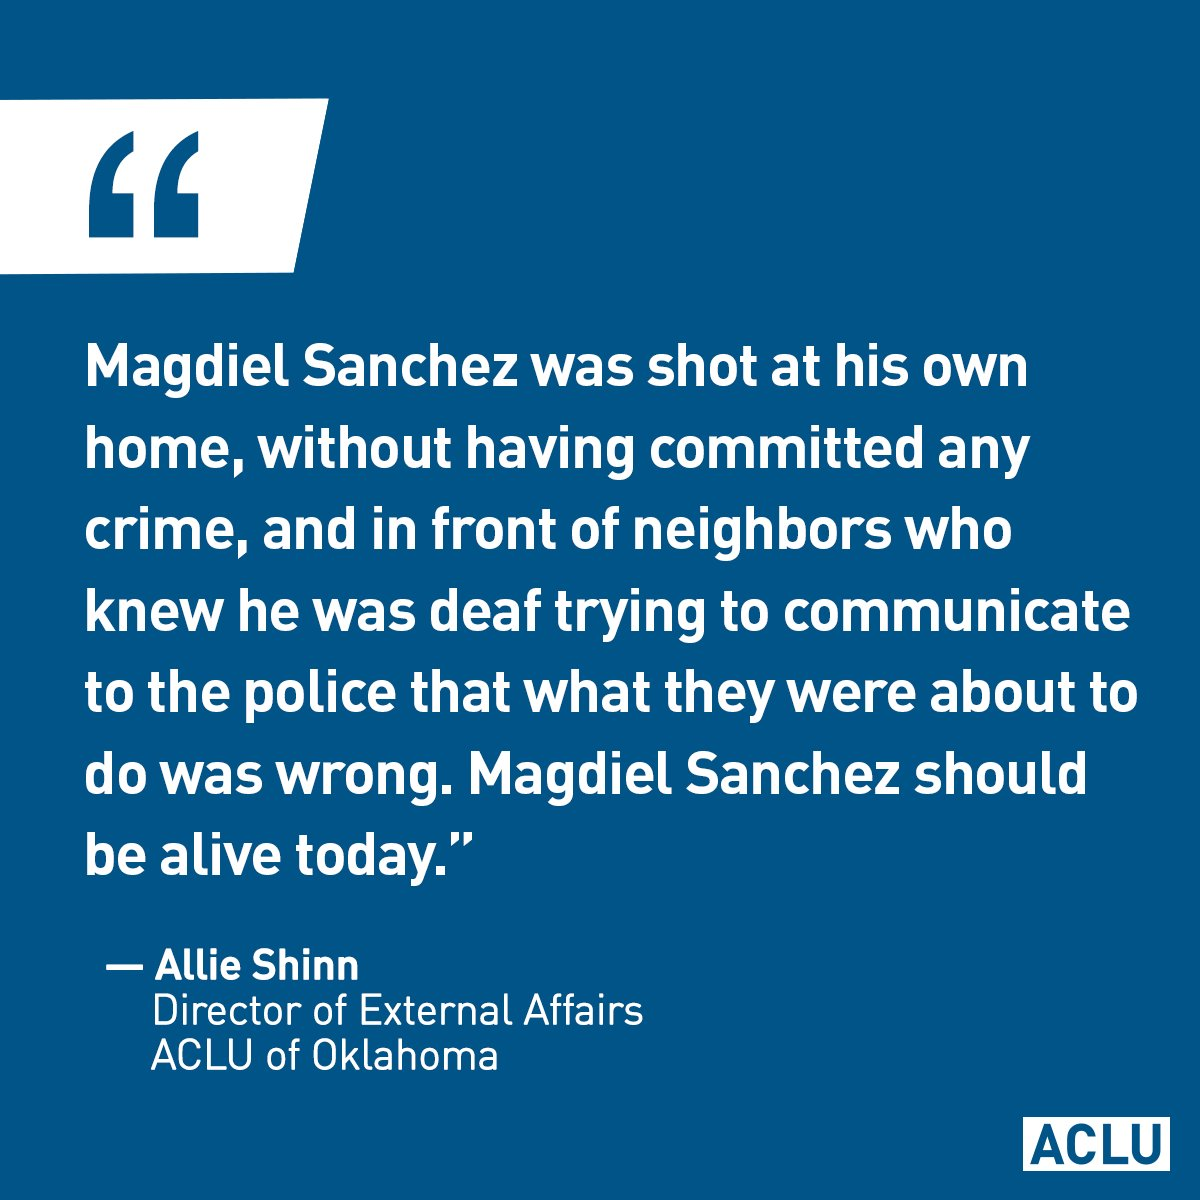 Police shouted commands at Magdiel Sanchez. He was deaf and couldn't hear them. An officer shot him dead. It's time for #policereform.